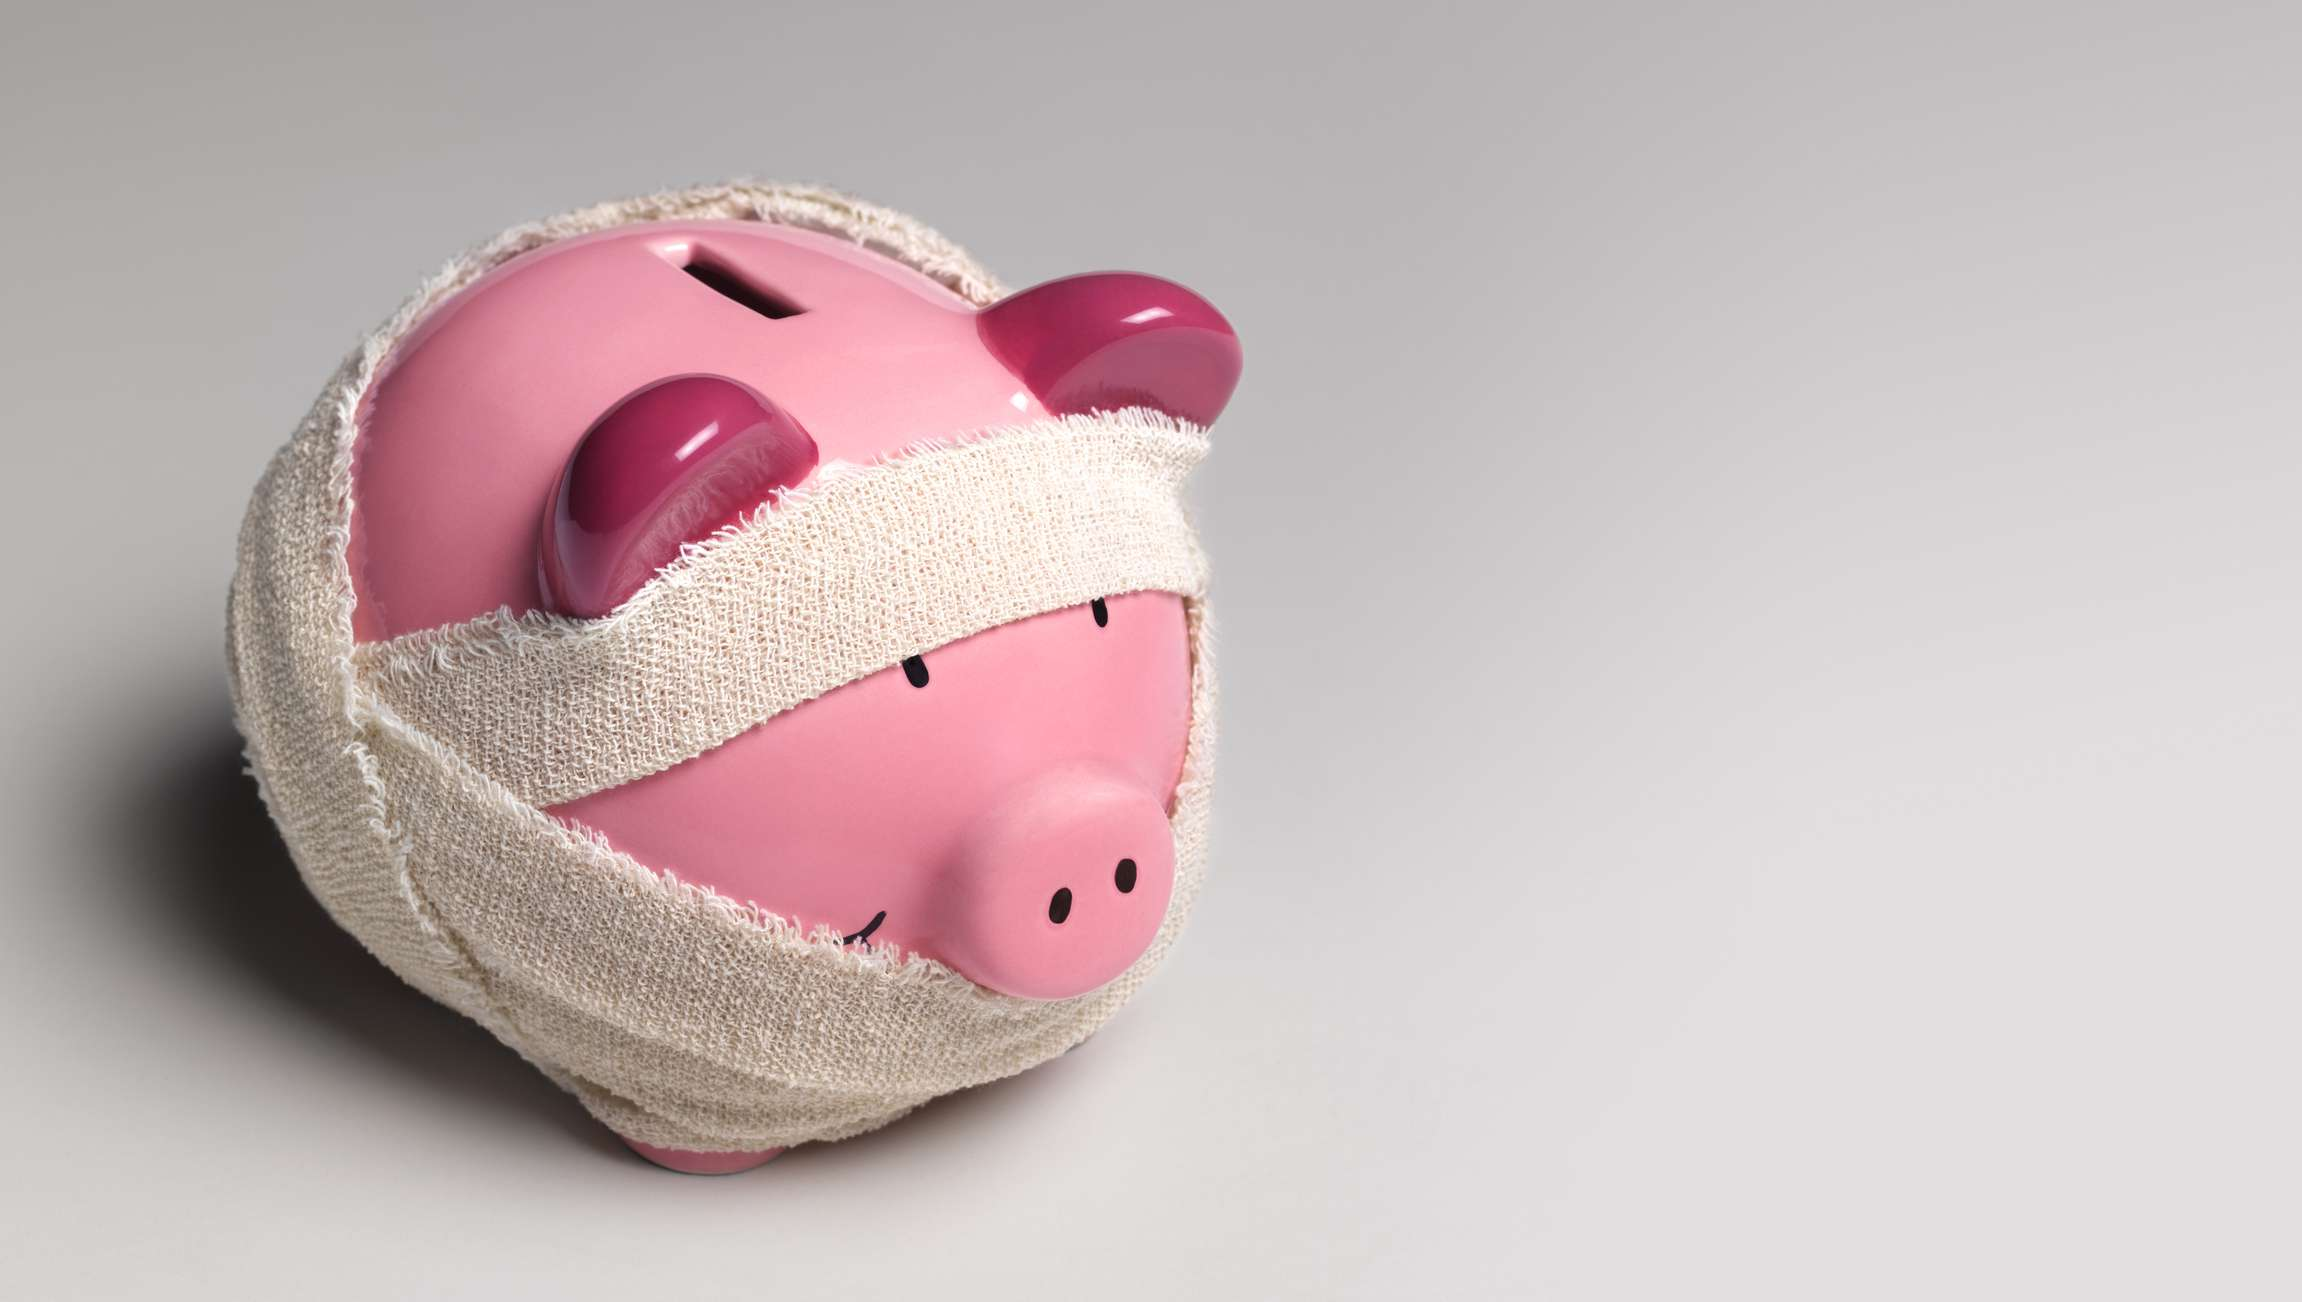 Piggy bank wrapped in bandages on a gray background